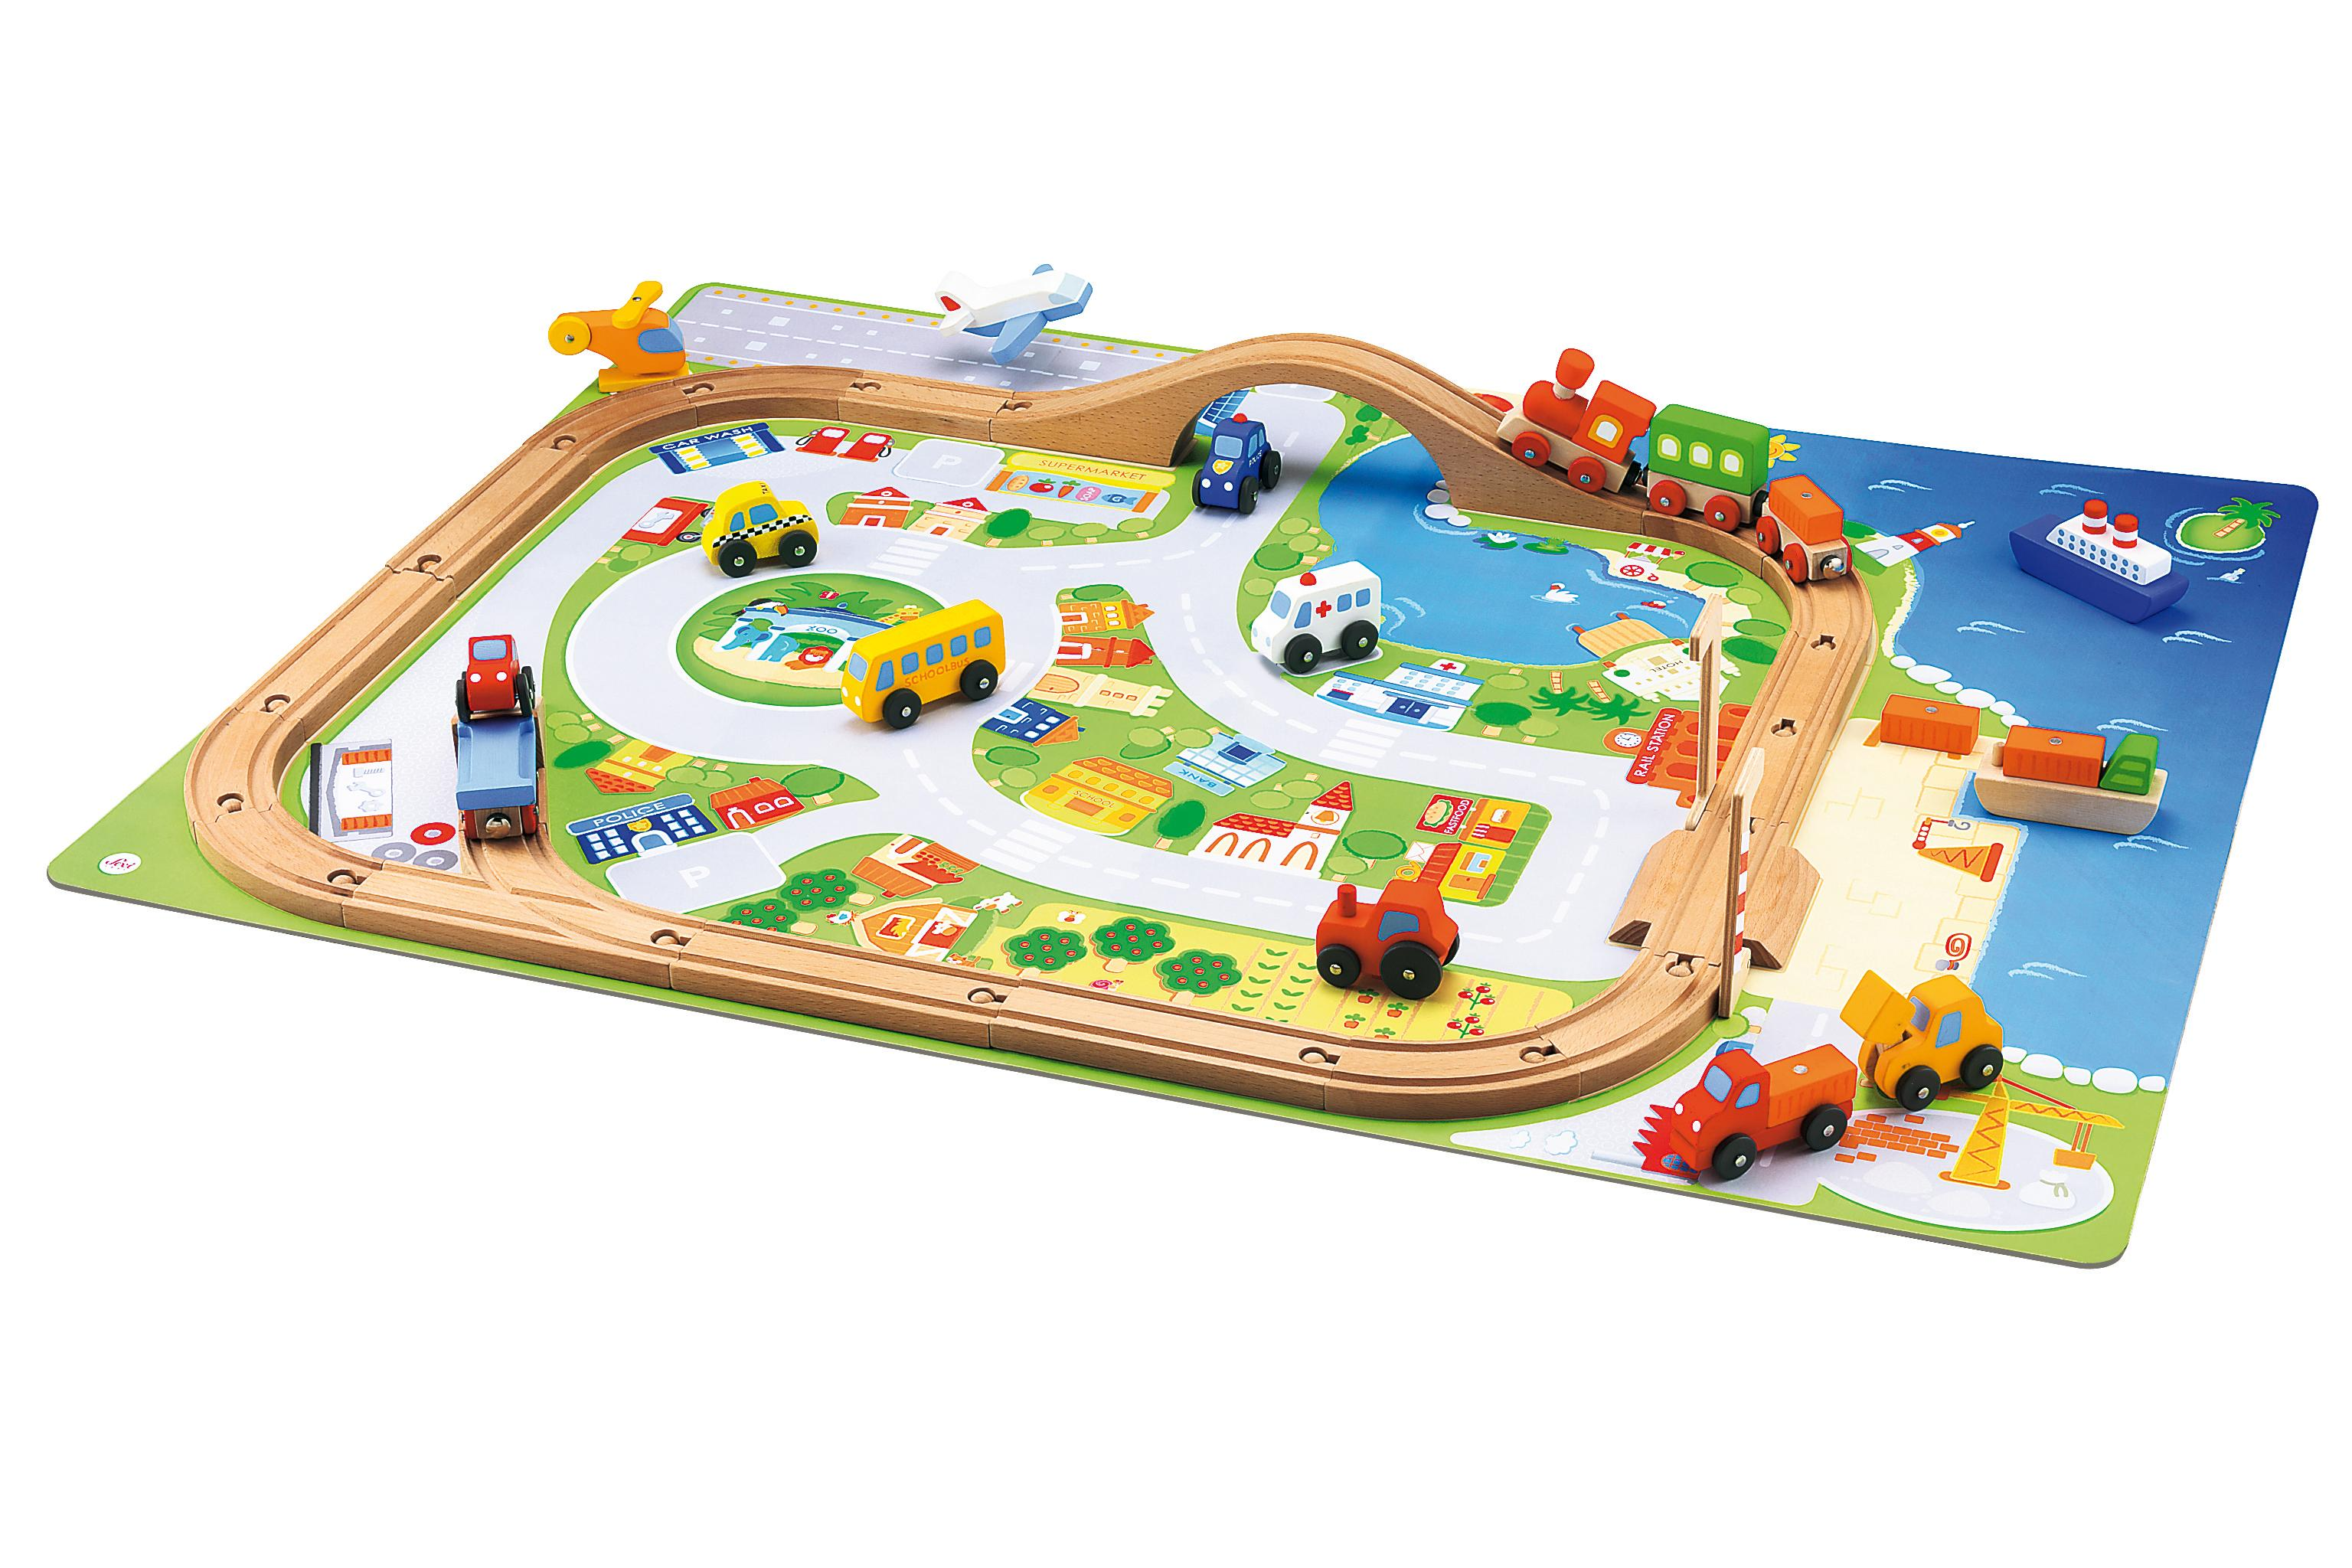 Amazon.com: Sevi Village Train Set: Toys & Games